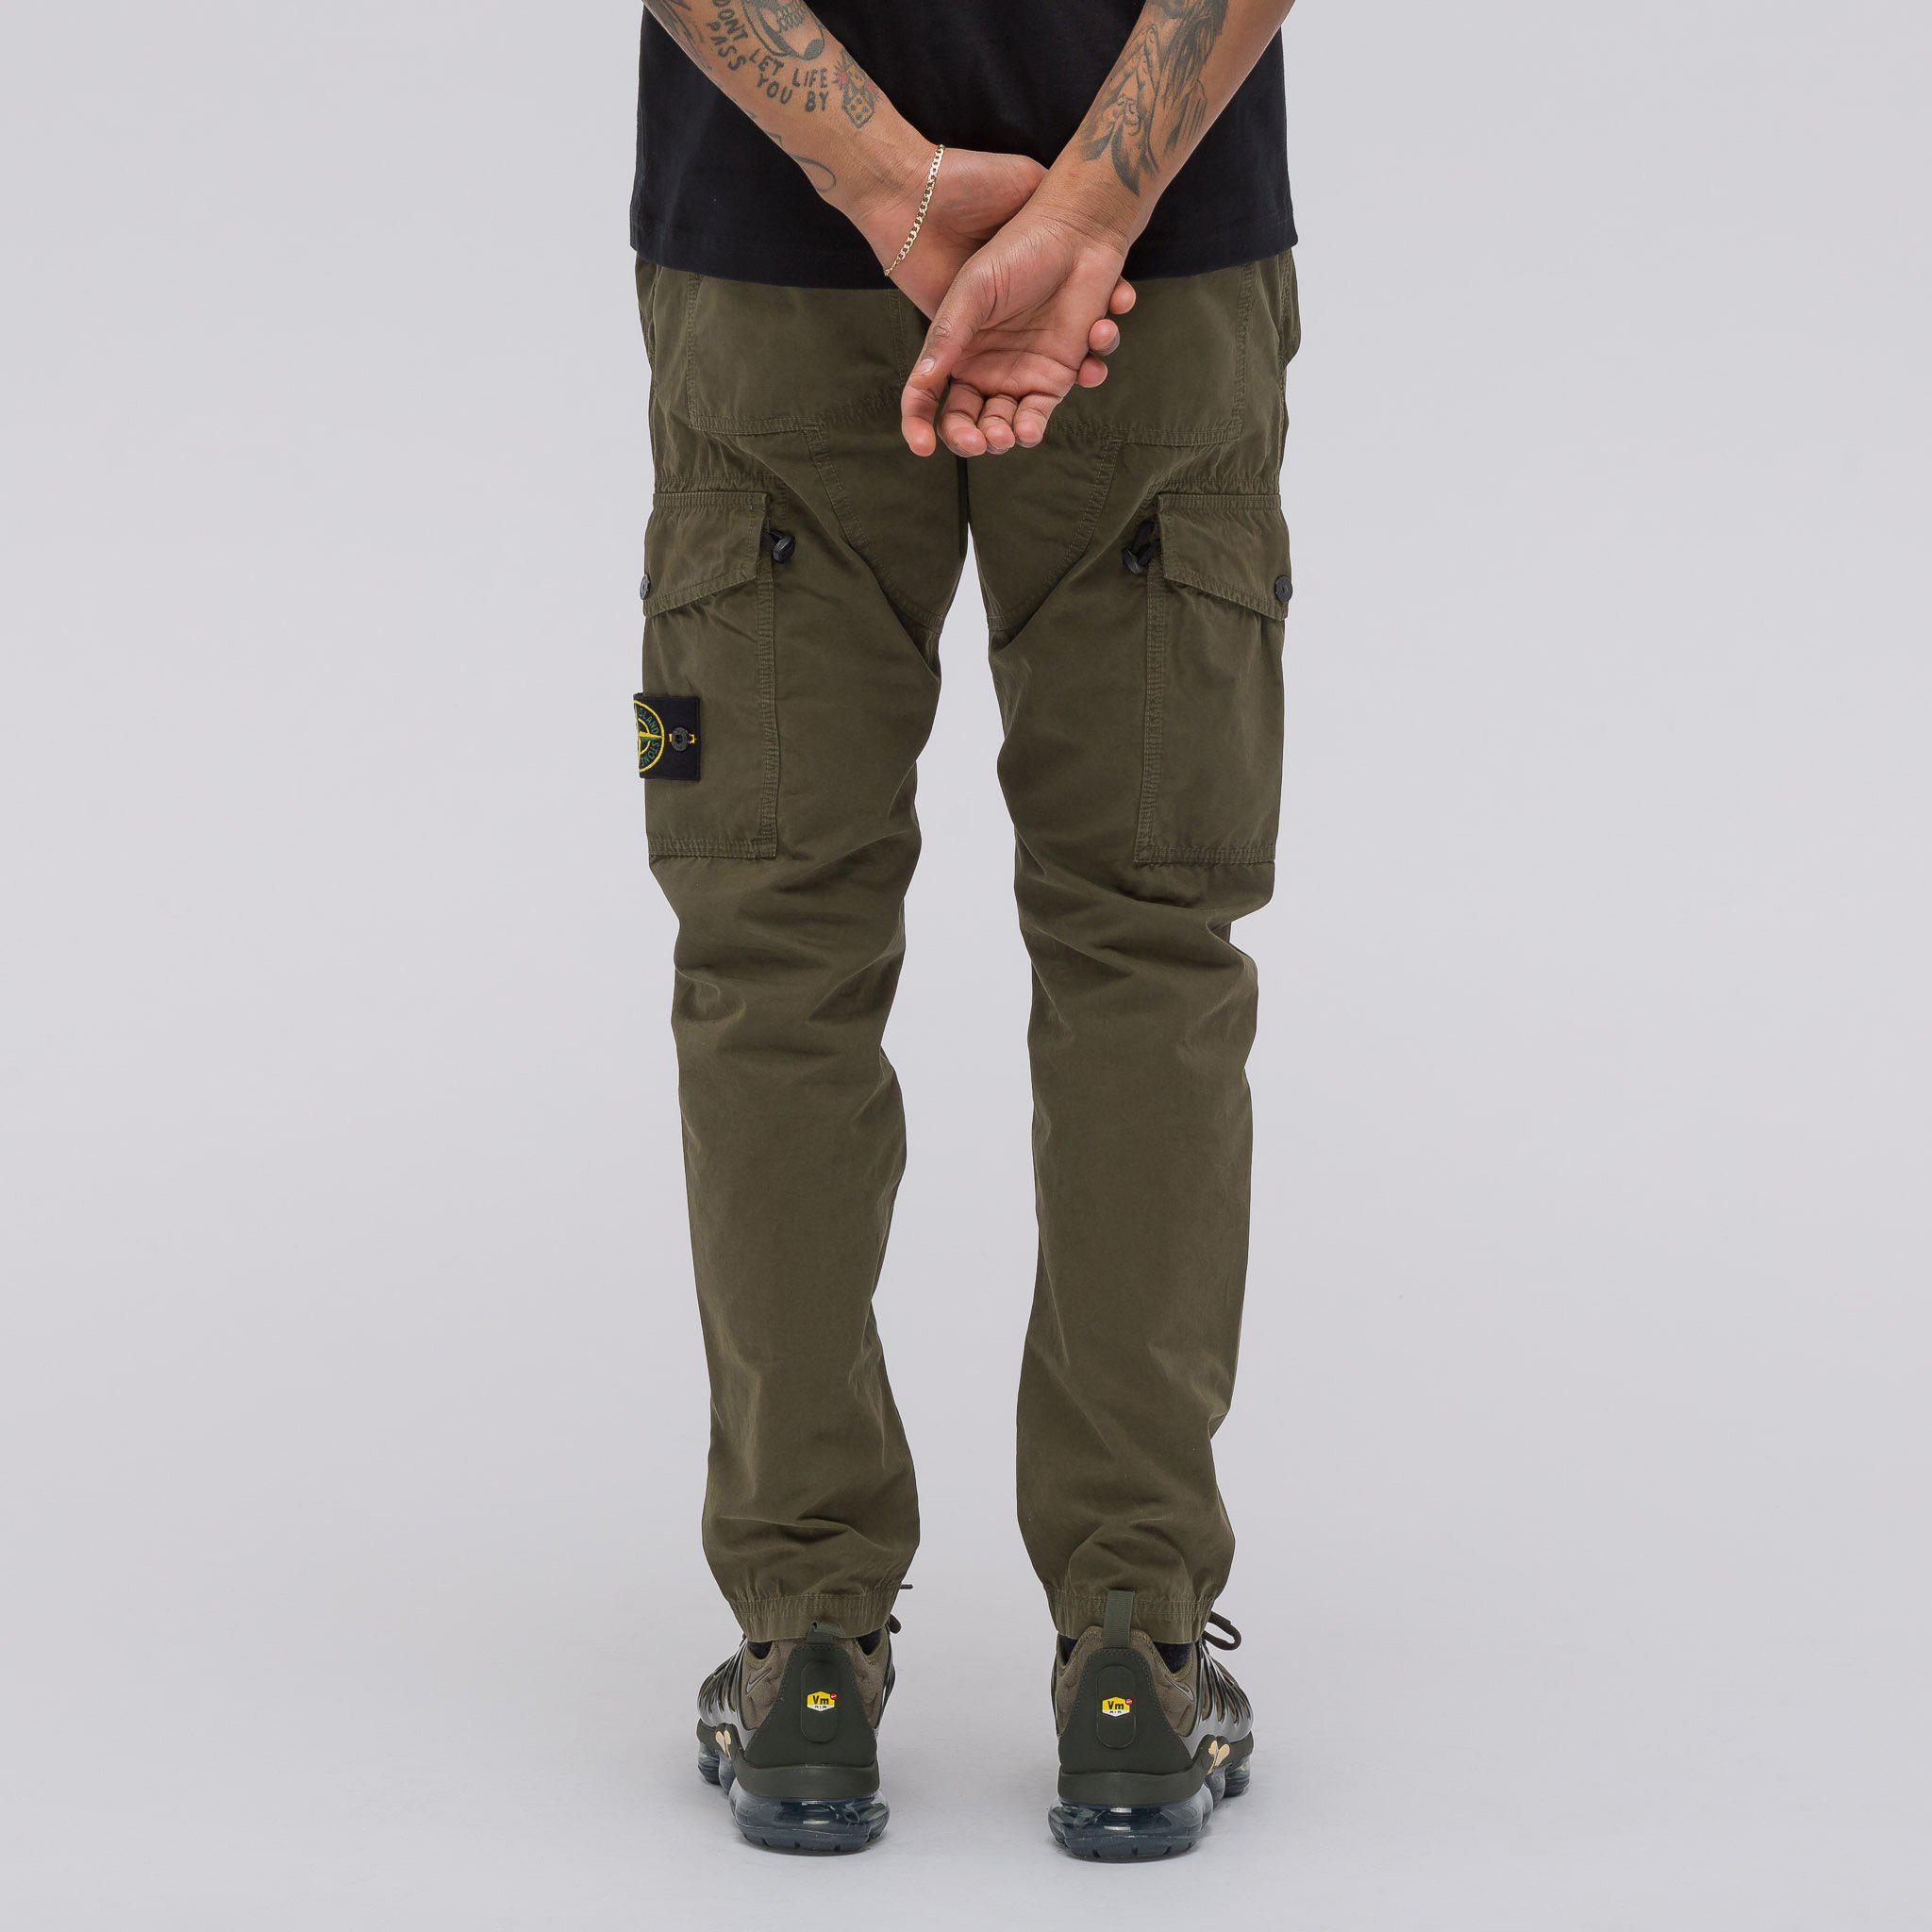 6d3de31196 Stone Island 314wa Tc+old Cargo Pant In Olive in Green for Men - Lyst